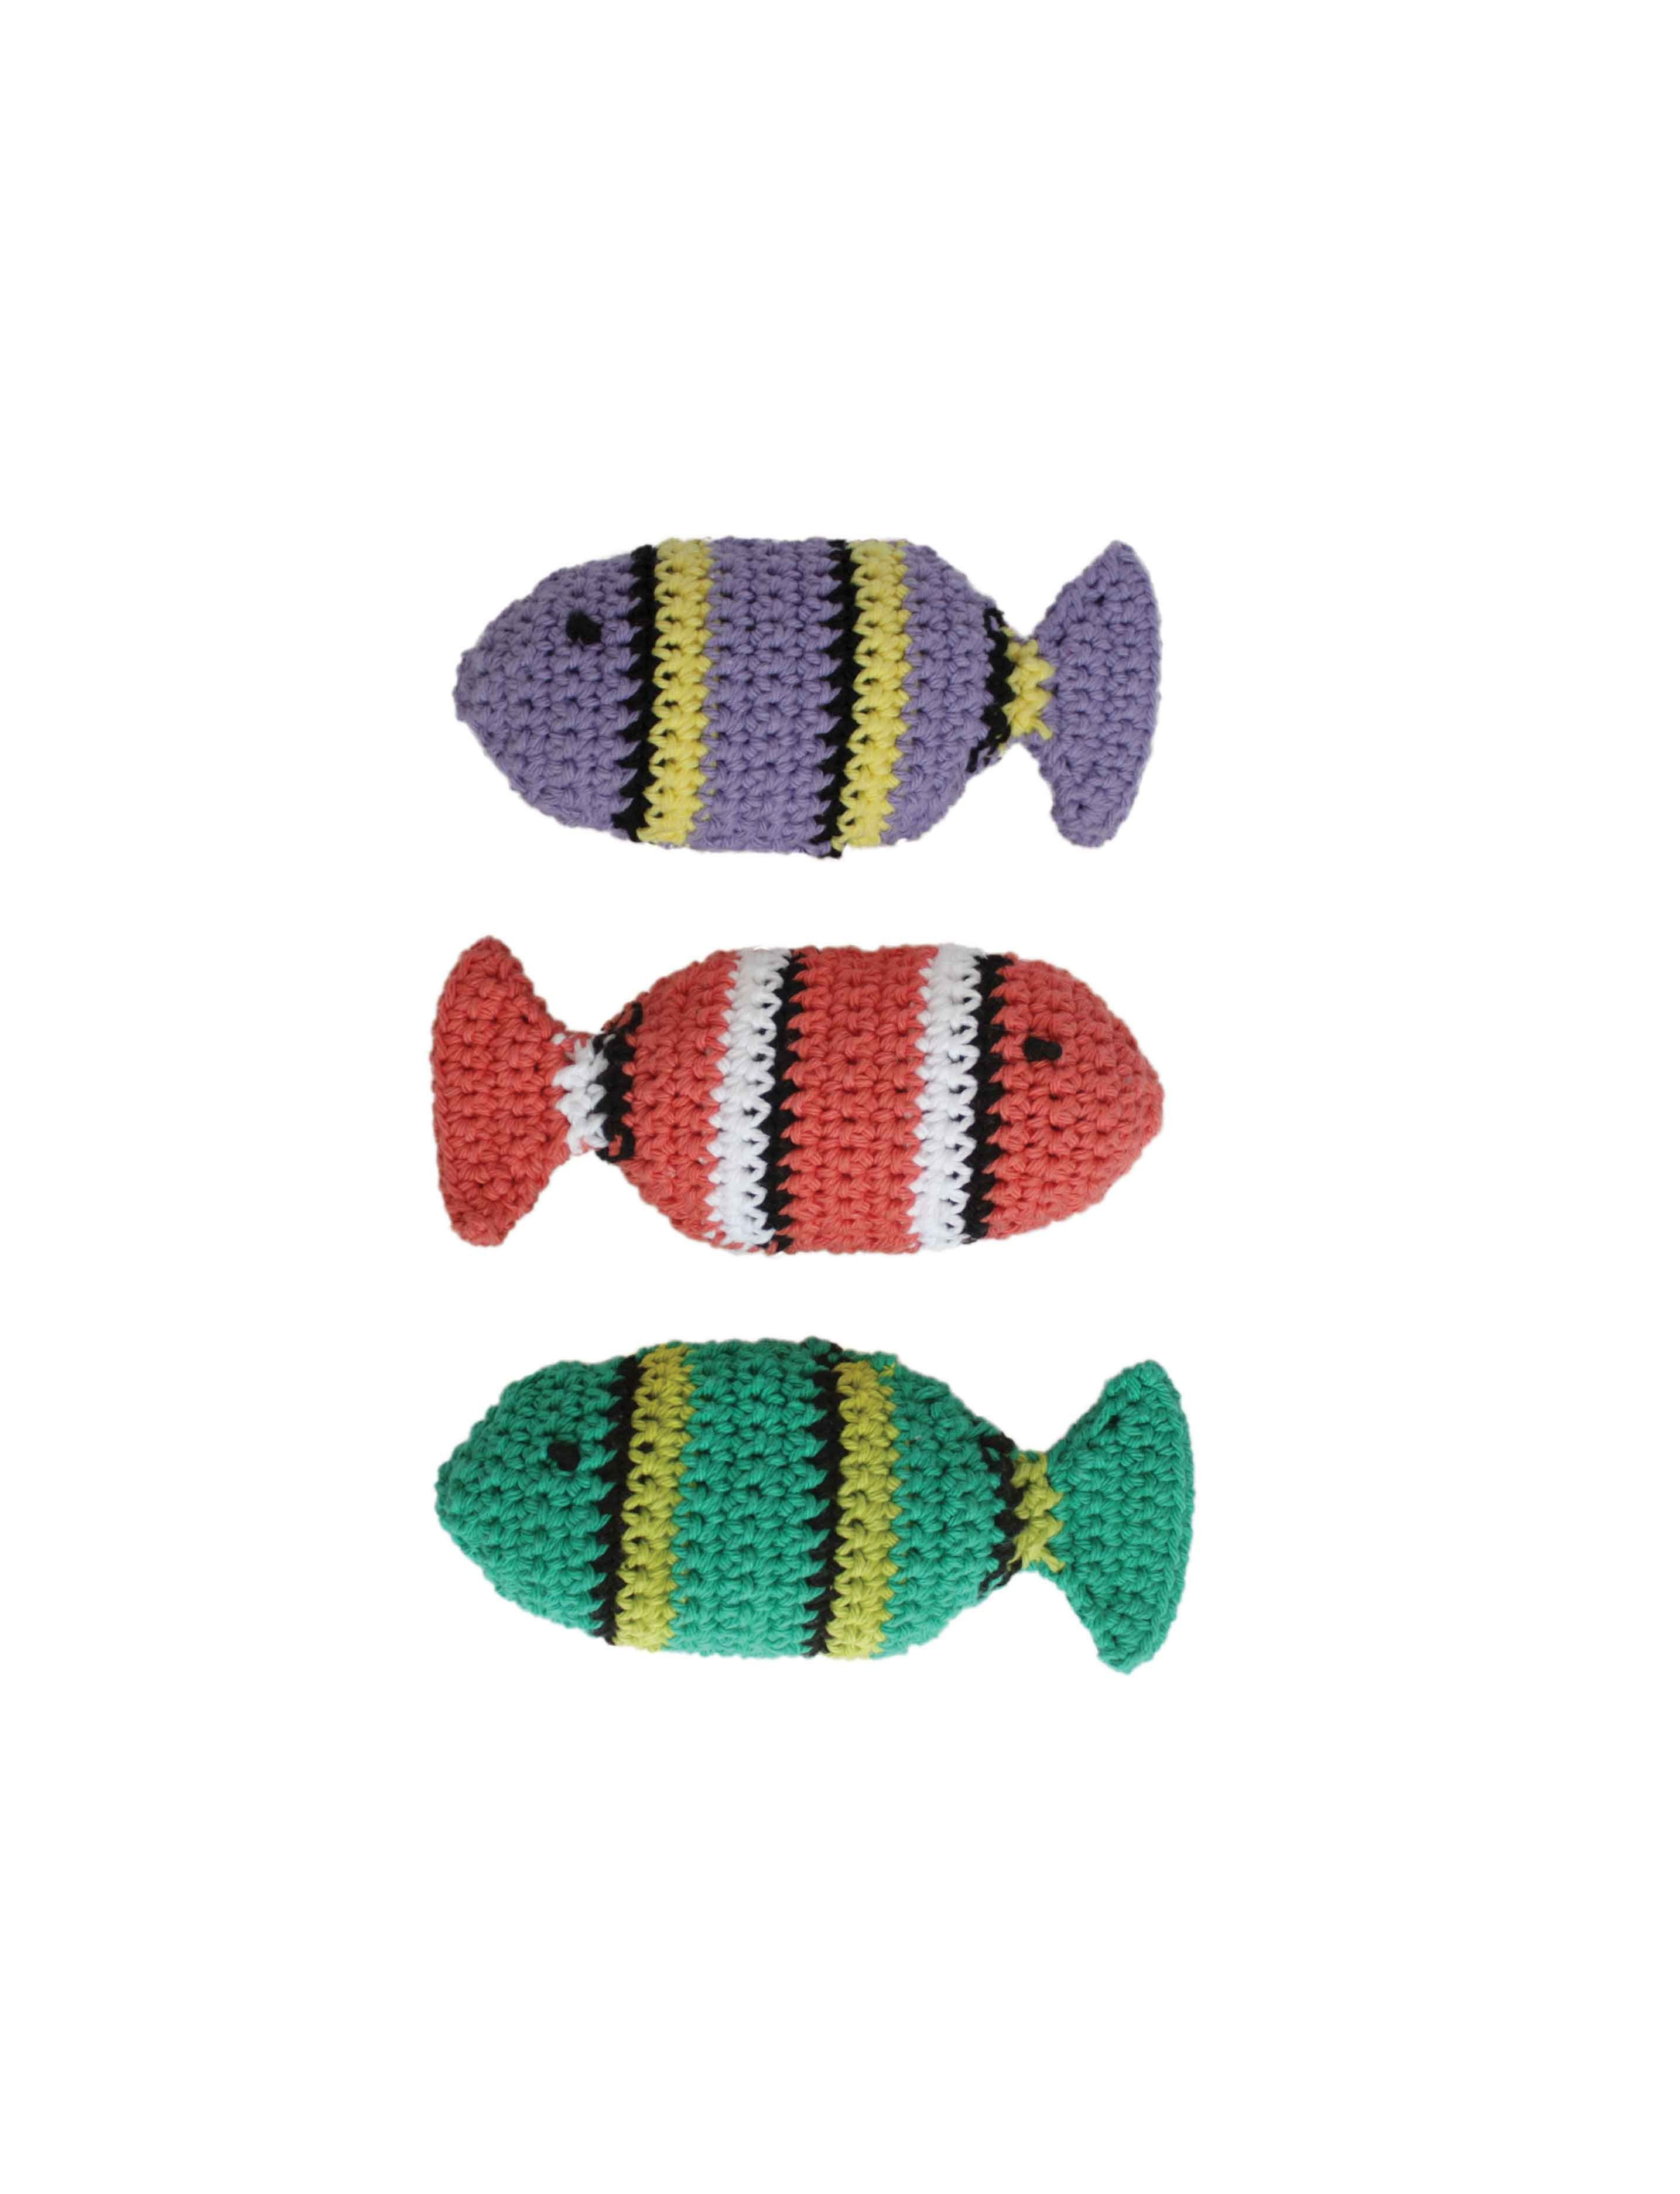 Tish the Fish | Craft Projects | Pinterest | Patrón gratis, Textiles ...